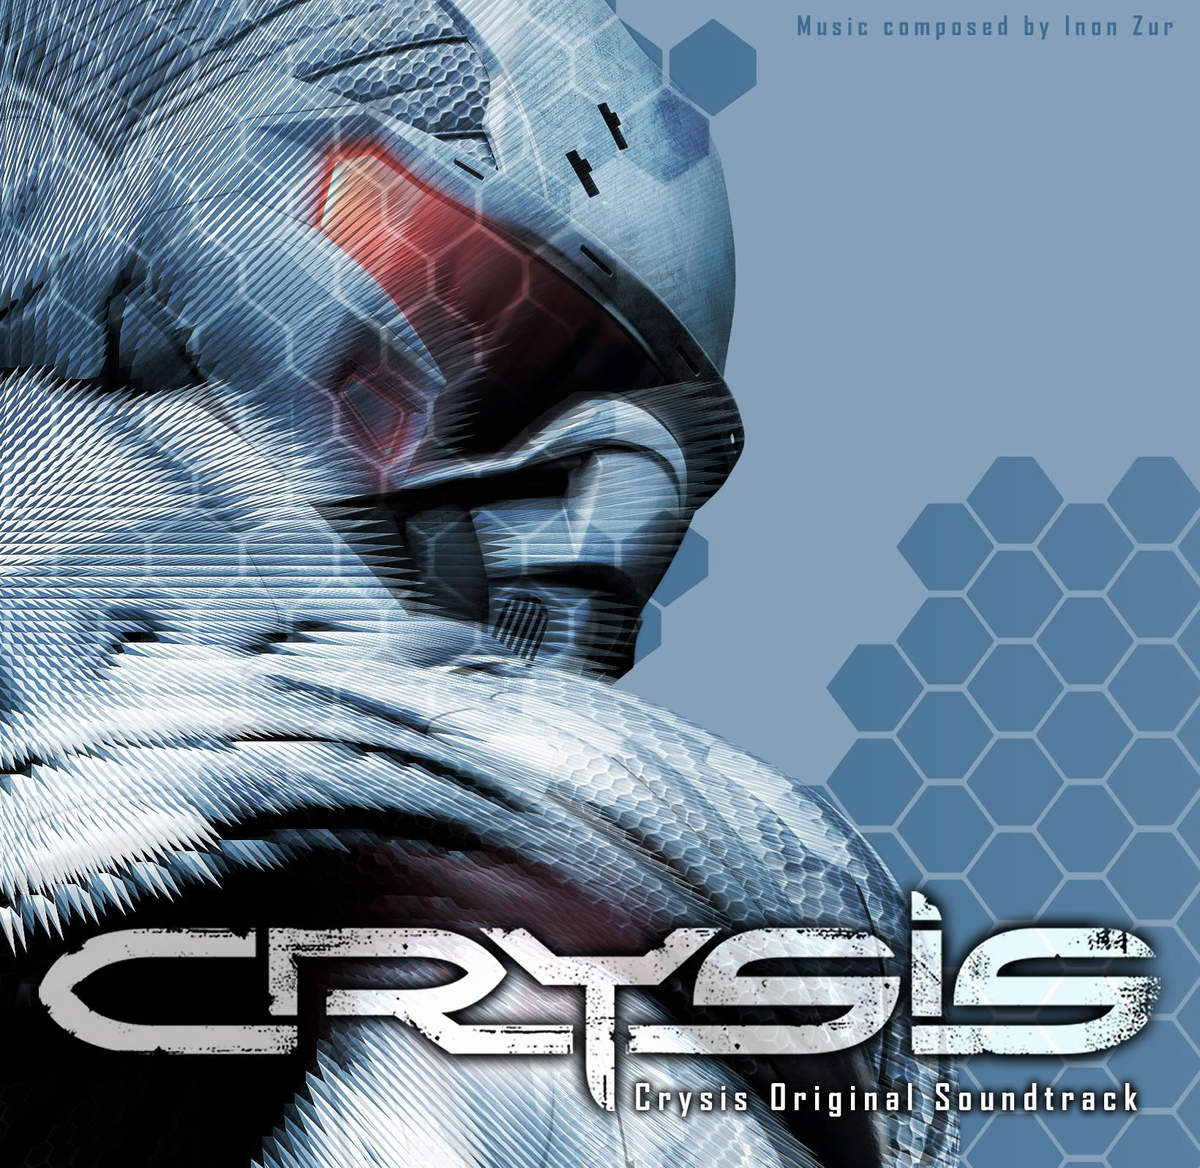 crysis_soundtrack__cover1200x1200.jpg